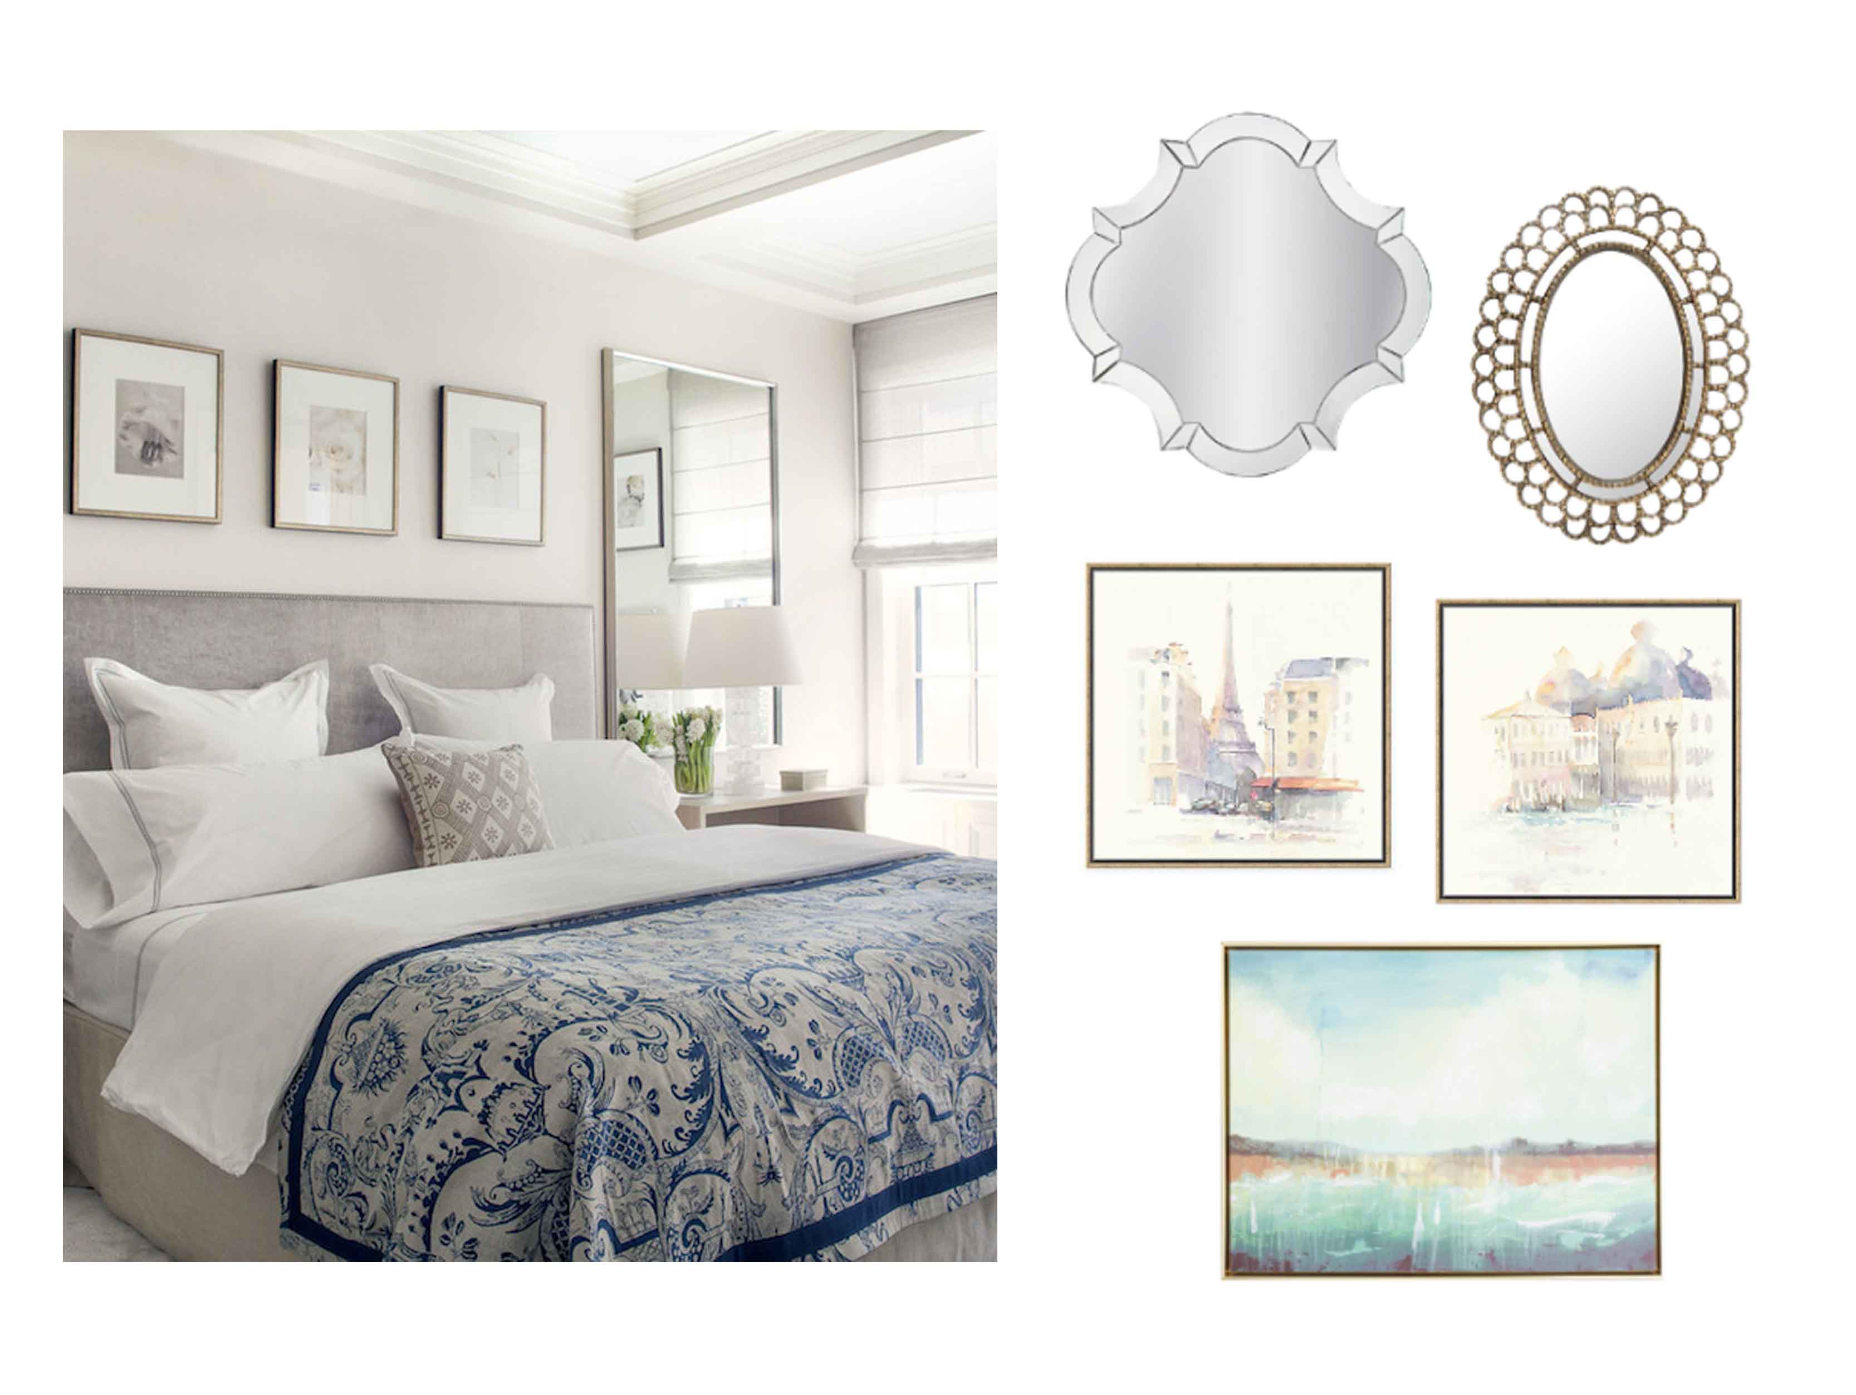 Online Interior Design Q Amp A For Free From Our Designers